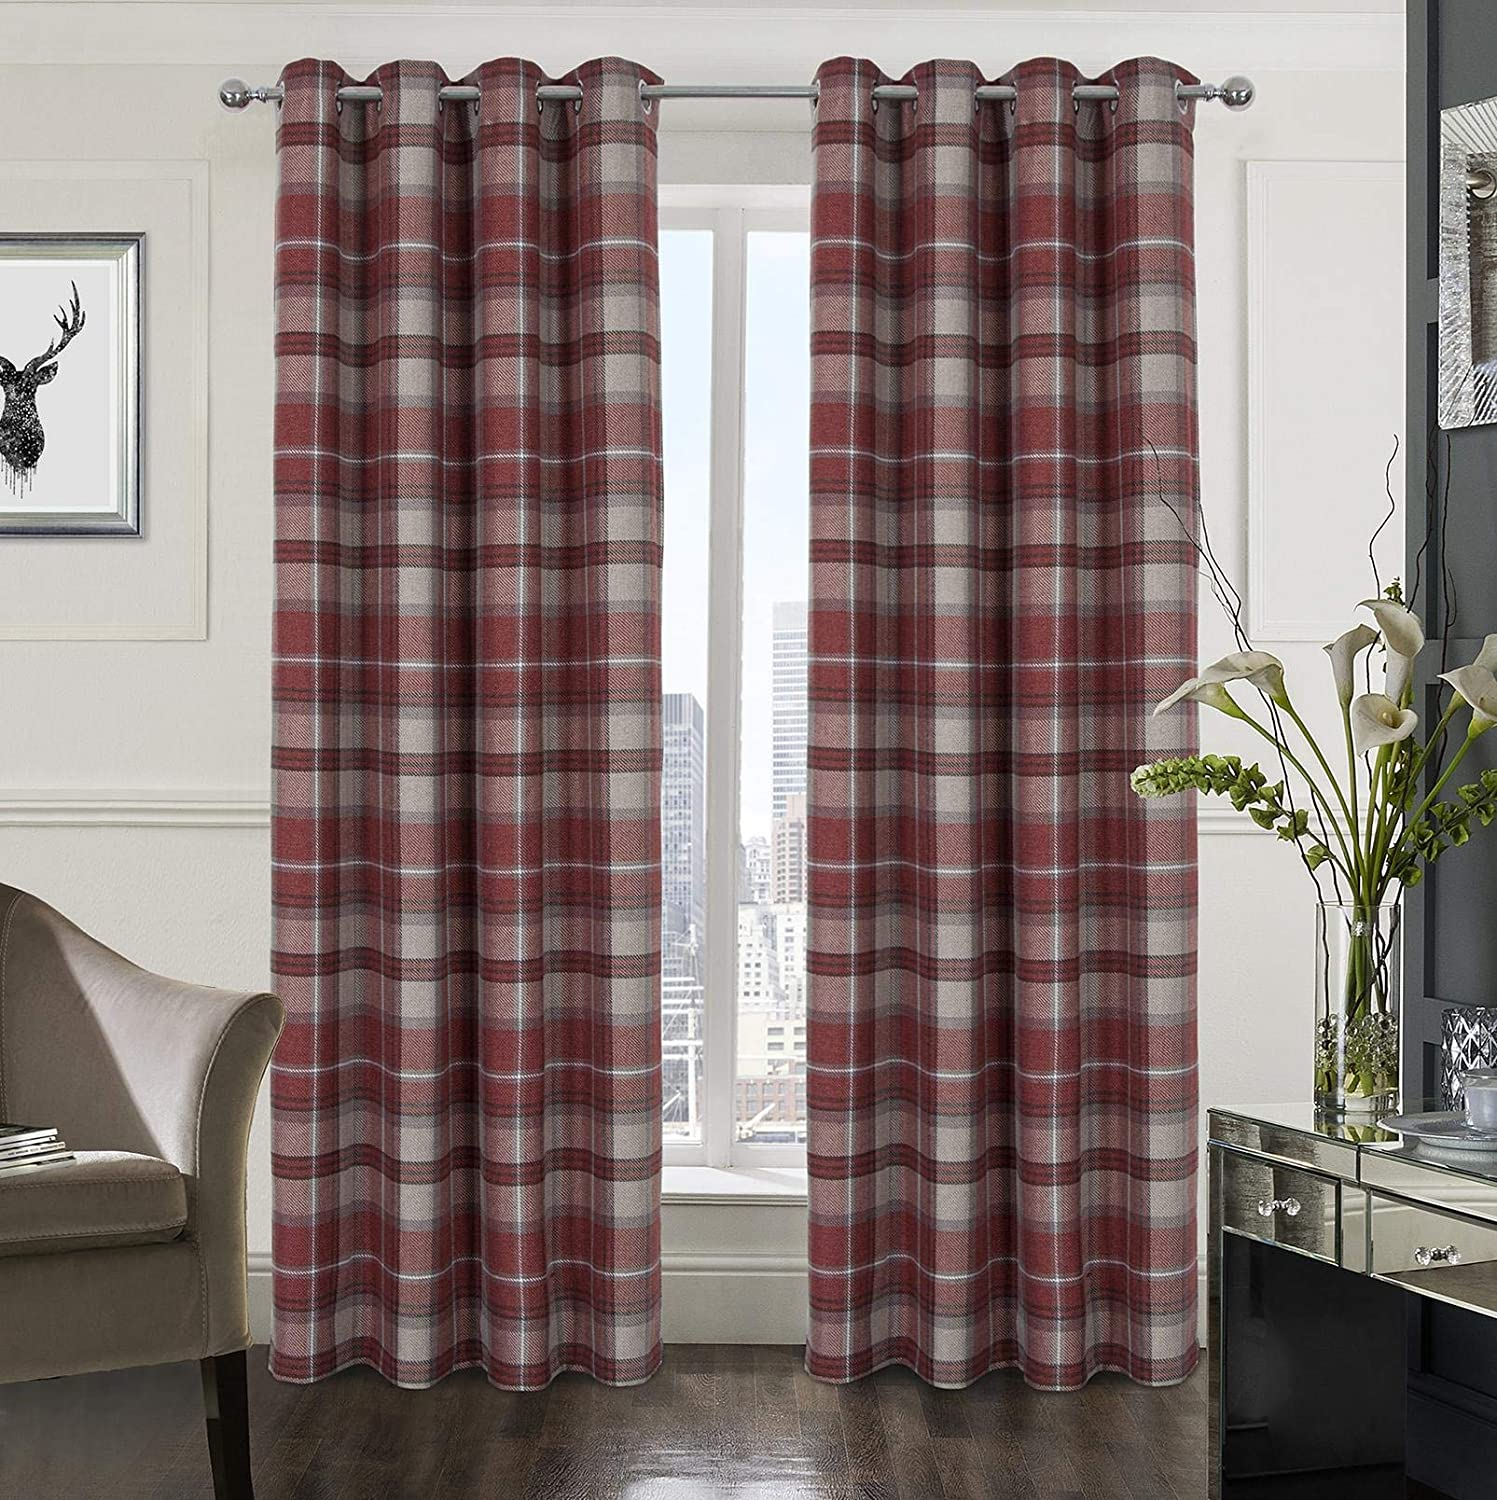 Plaid Tartan Check Modern Classic Window Treatment Curtain/Drapes for Living Room 2 Panels Red 54X84 Inch